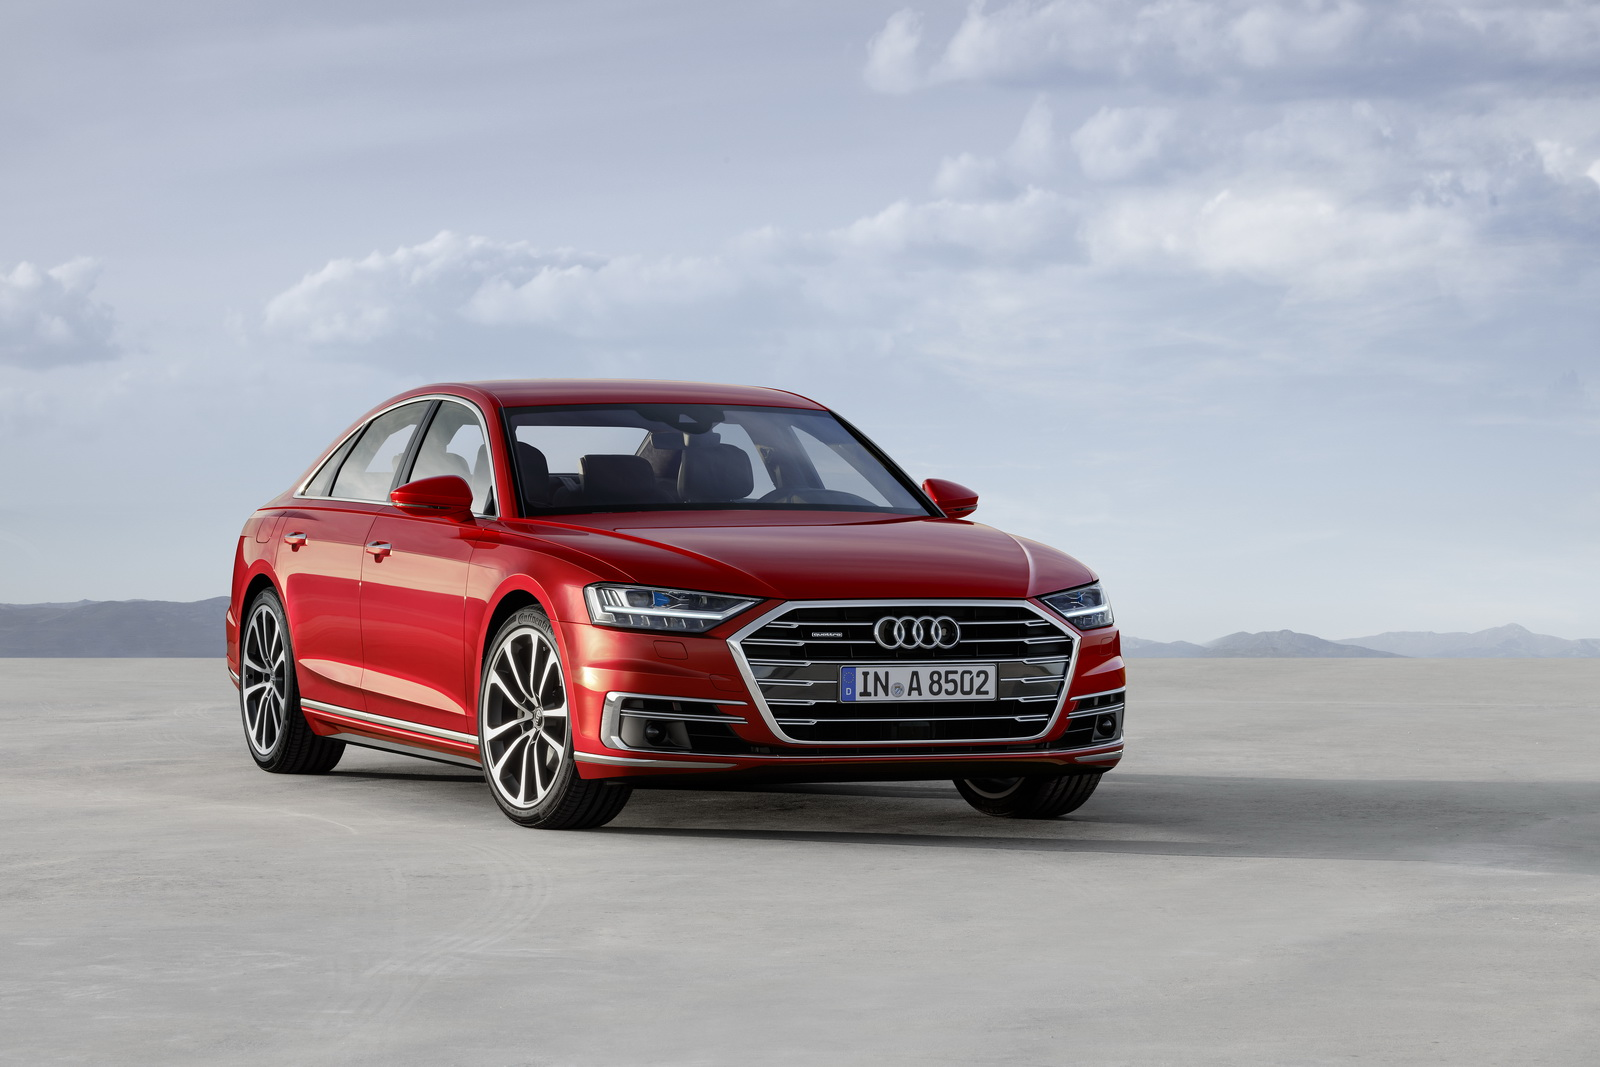 audi opens order books for new a8 prices start at 90 600 in germany. Black Bedroom Furniture Sets. Home Design Ideas